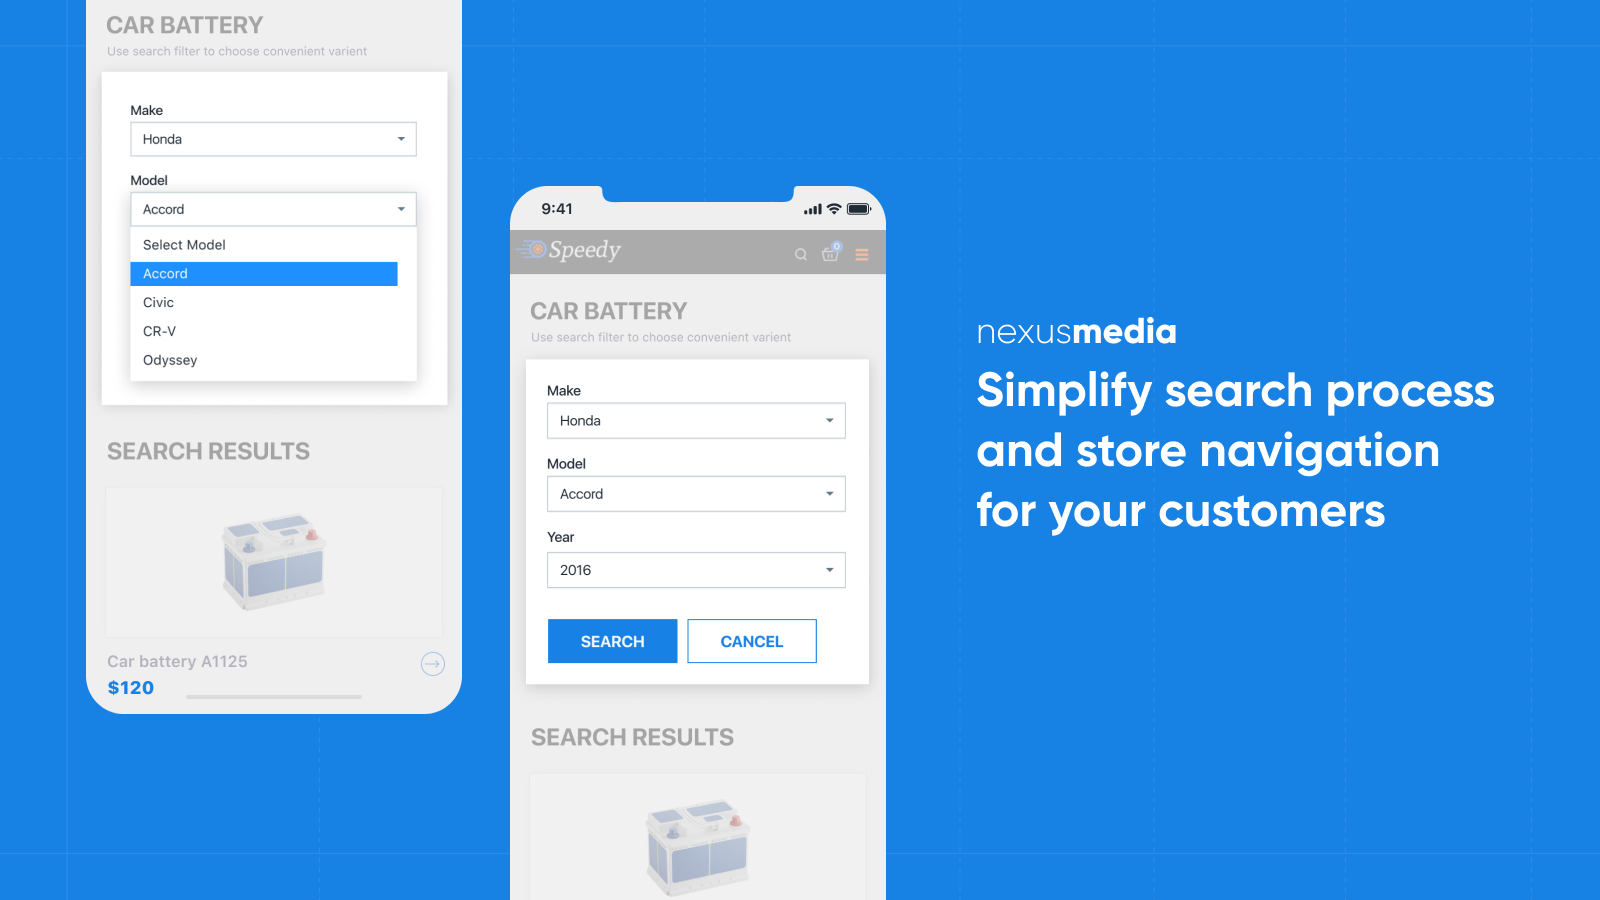 Simplify search process and store navigation for your customers